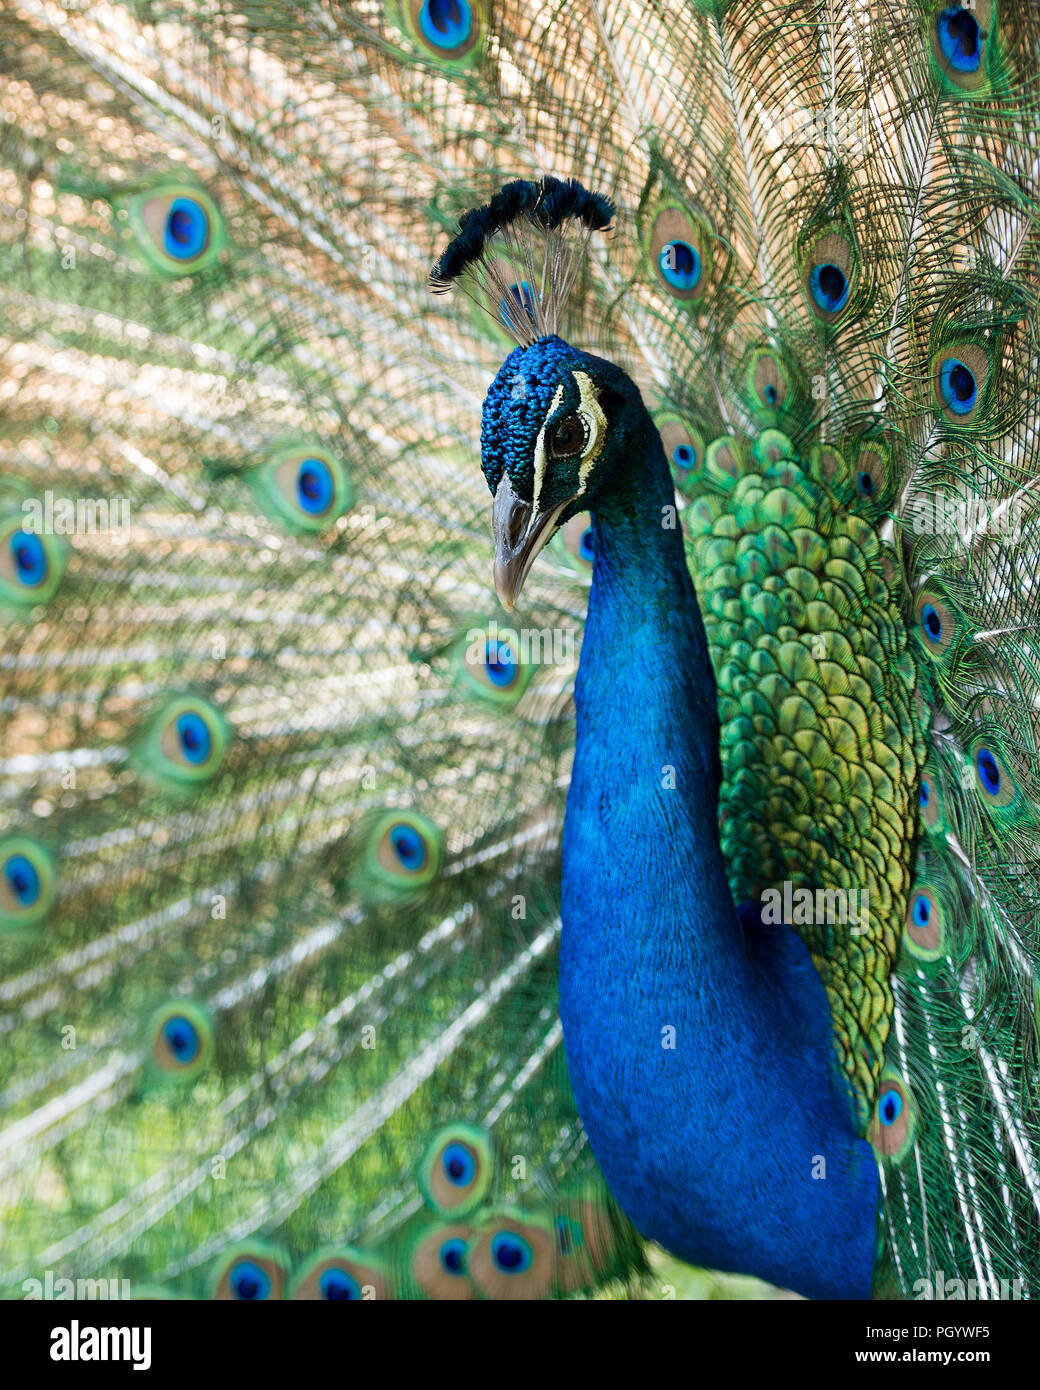 Peacock bird close up displaying its beautiful and colorful blue & green plumage tail with eyespots. Stock Photo